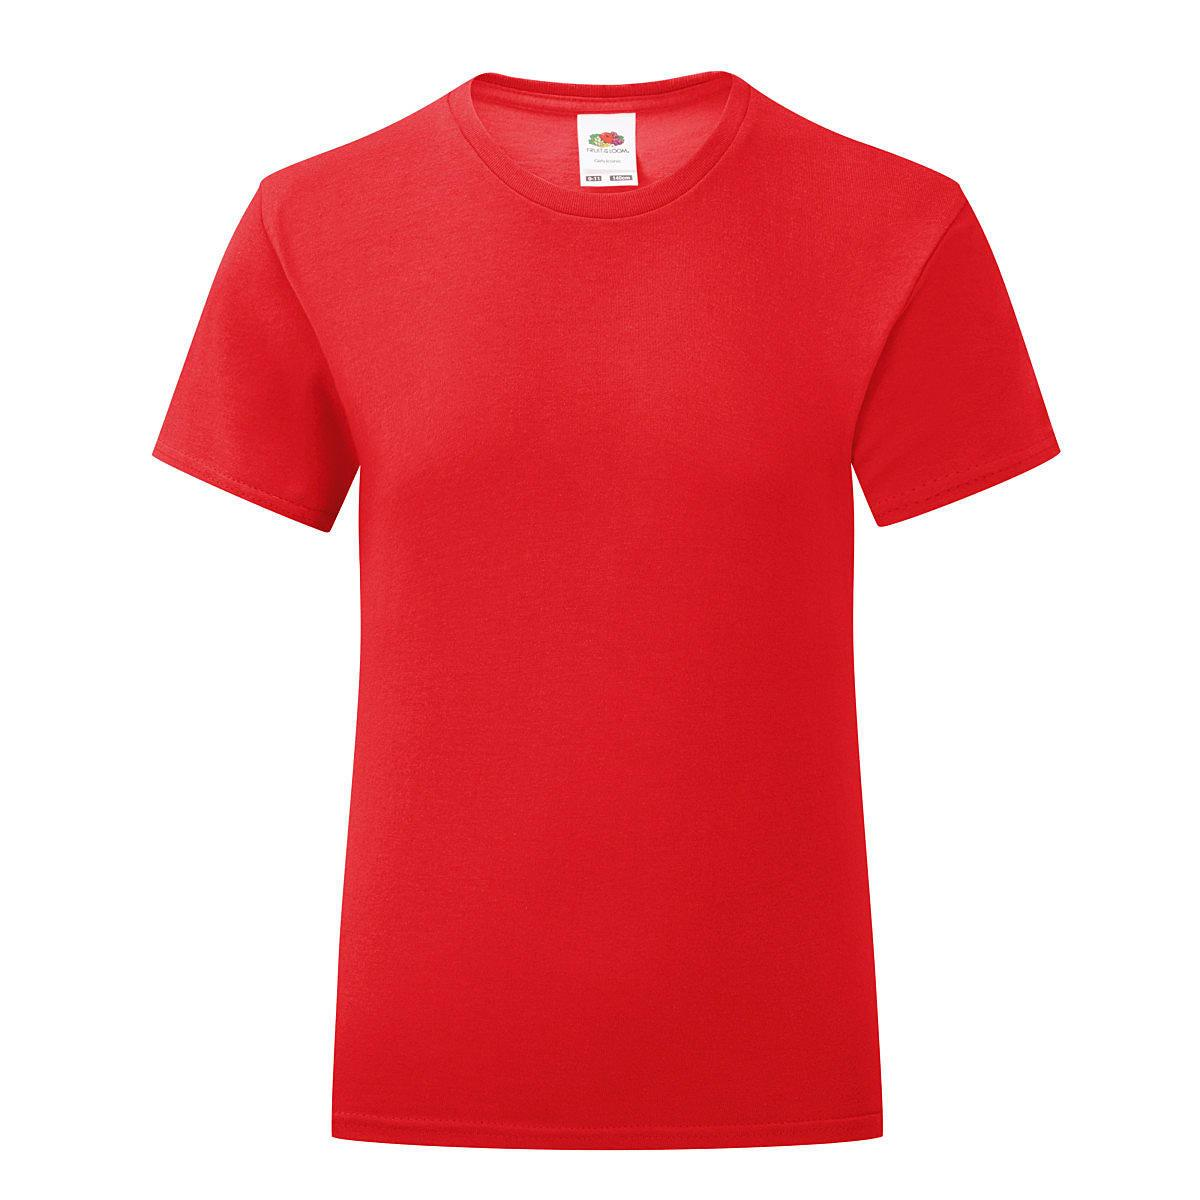 Fruit Of The Loom Girls Iconic T-Shirt in Red (Product Code: 61025)